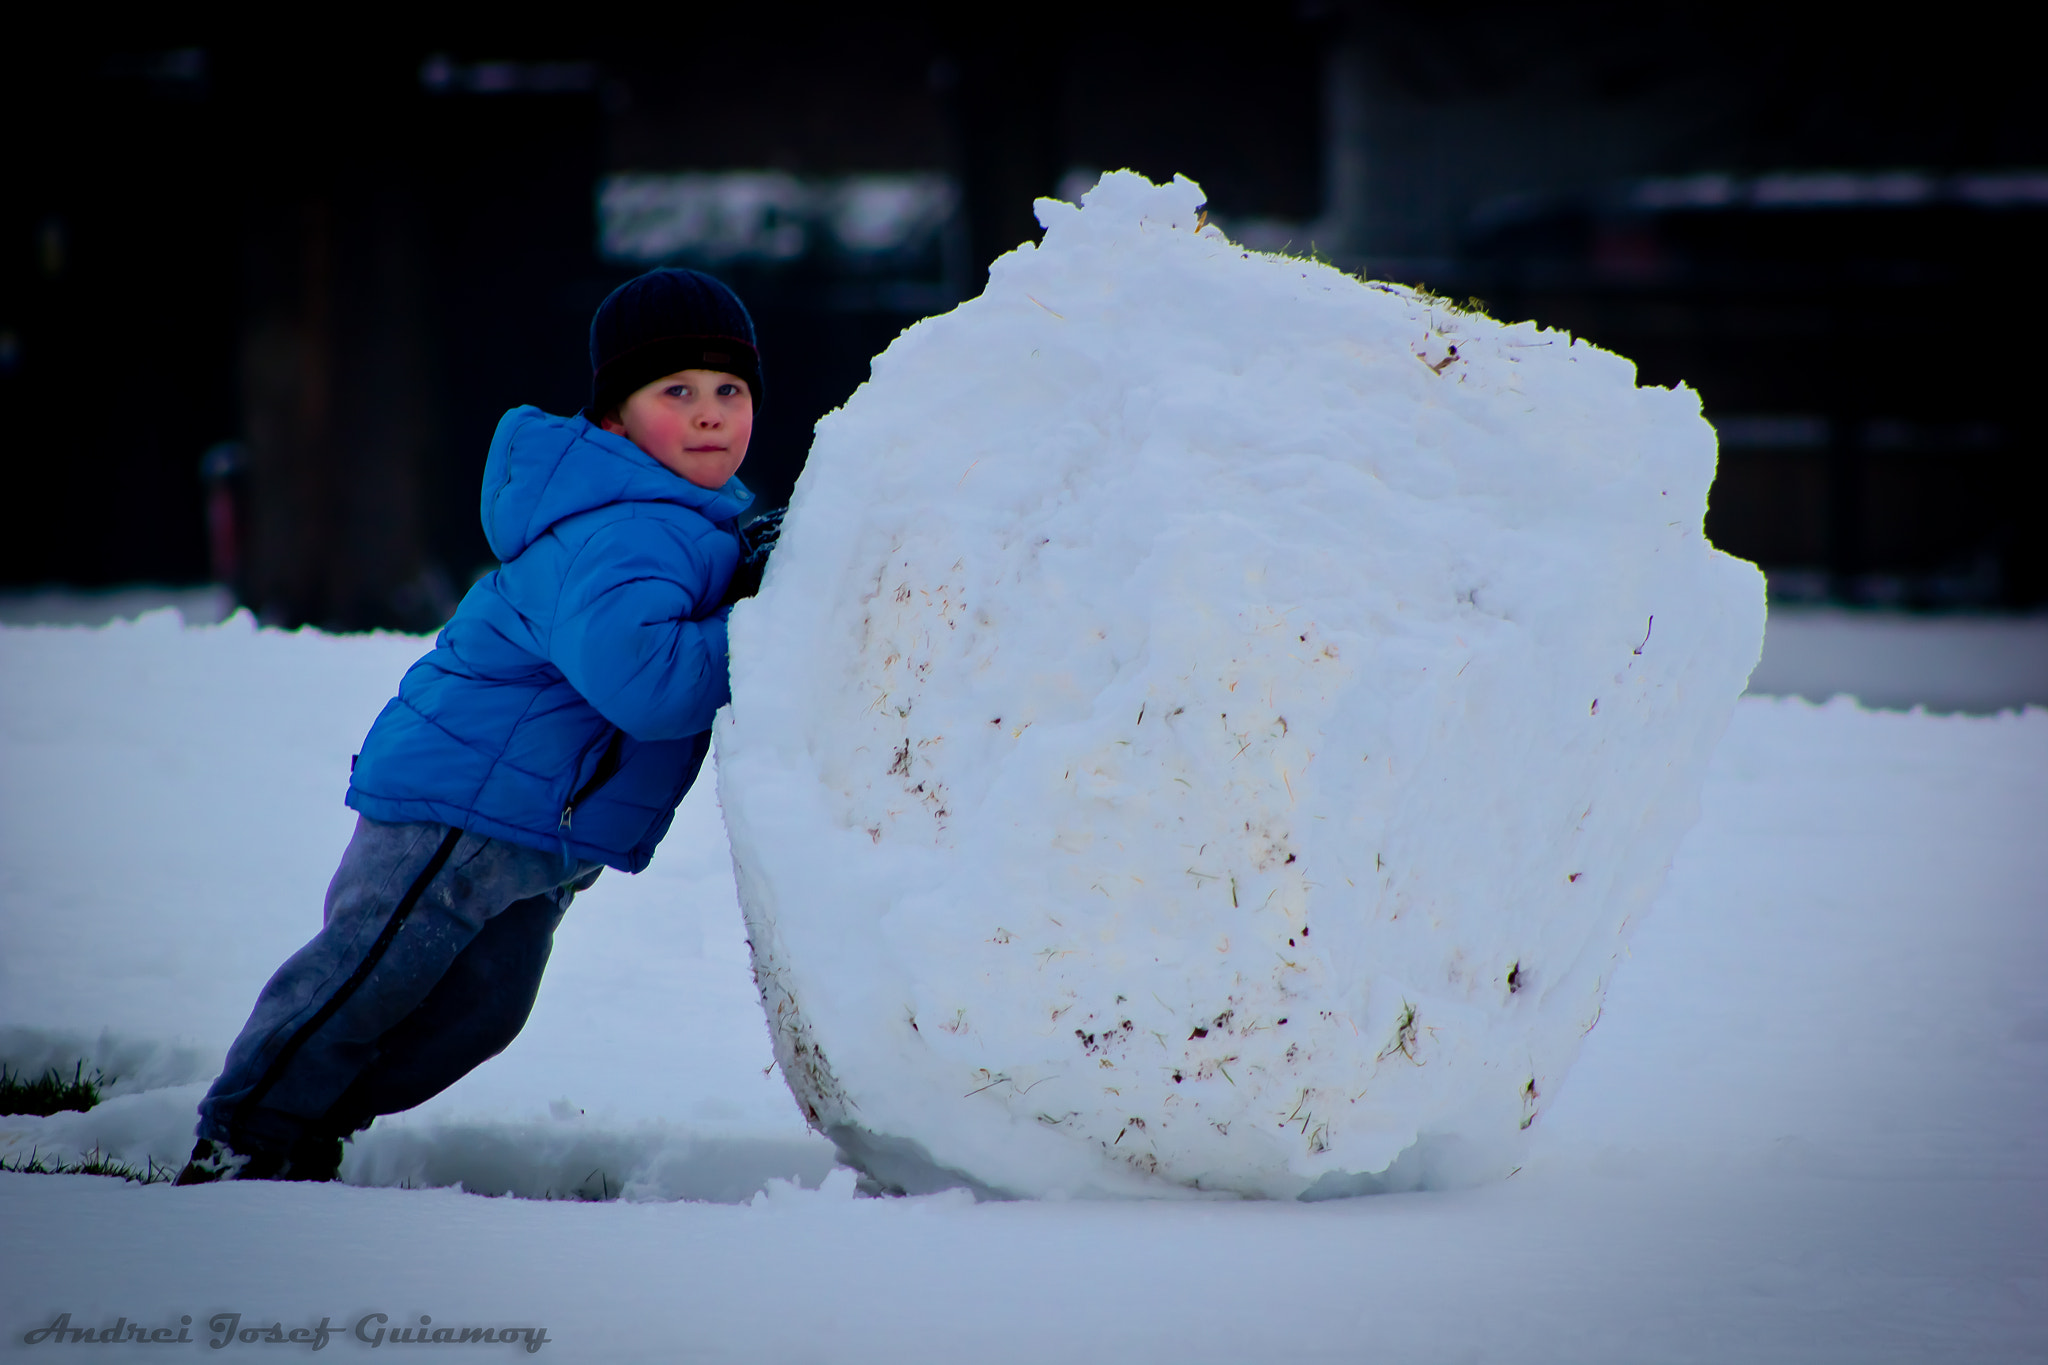 Photograph Snow Ball by Andrei Josef Guiamoy on 500px